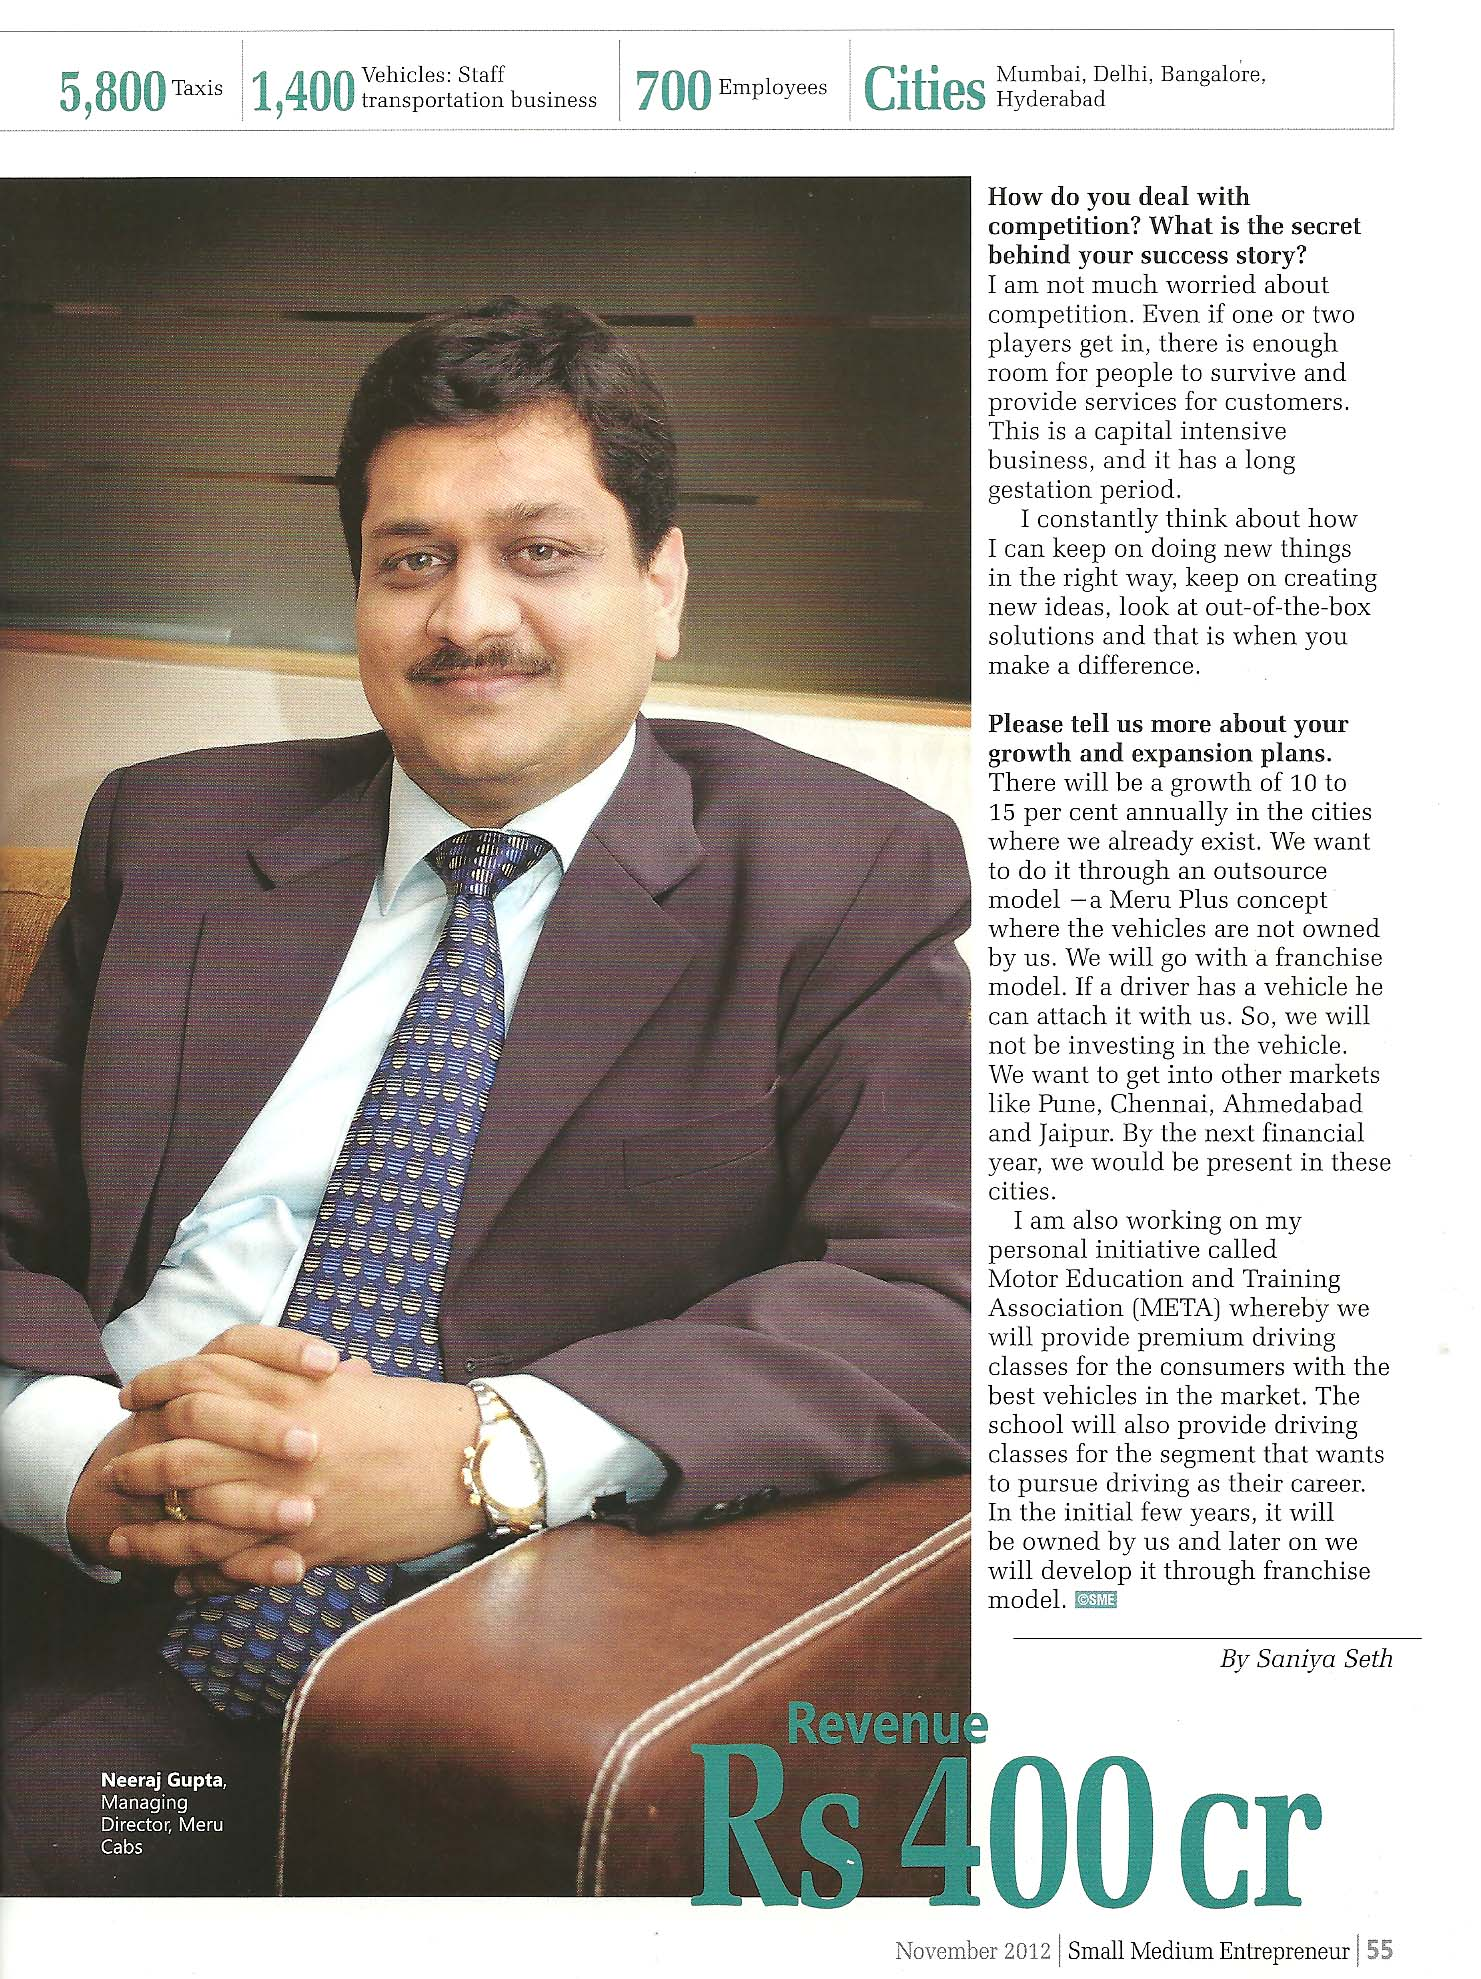 Small Medium Entrepreneur Nov 2012 Pg 55.jpg